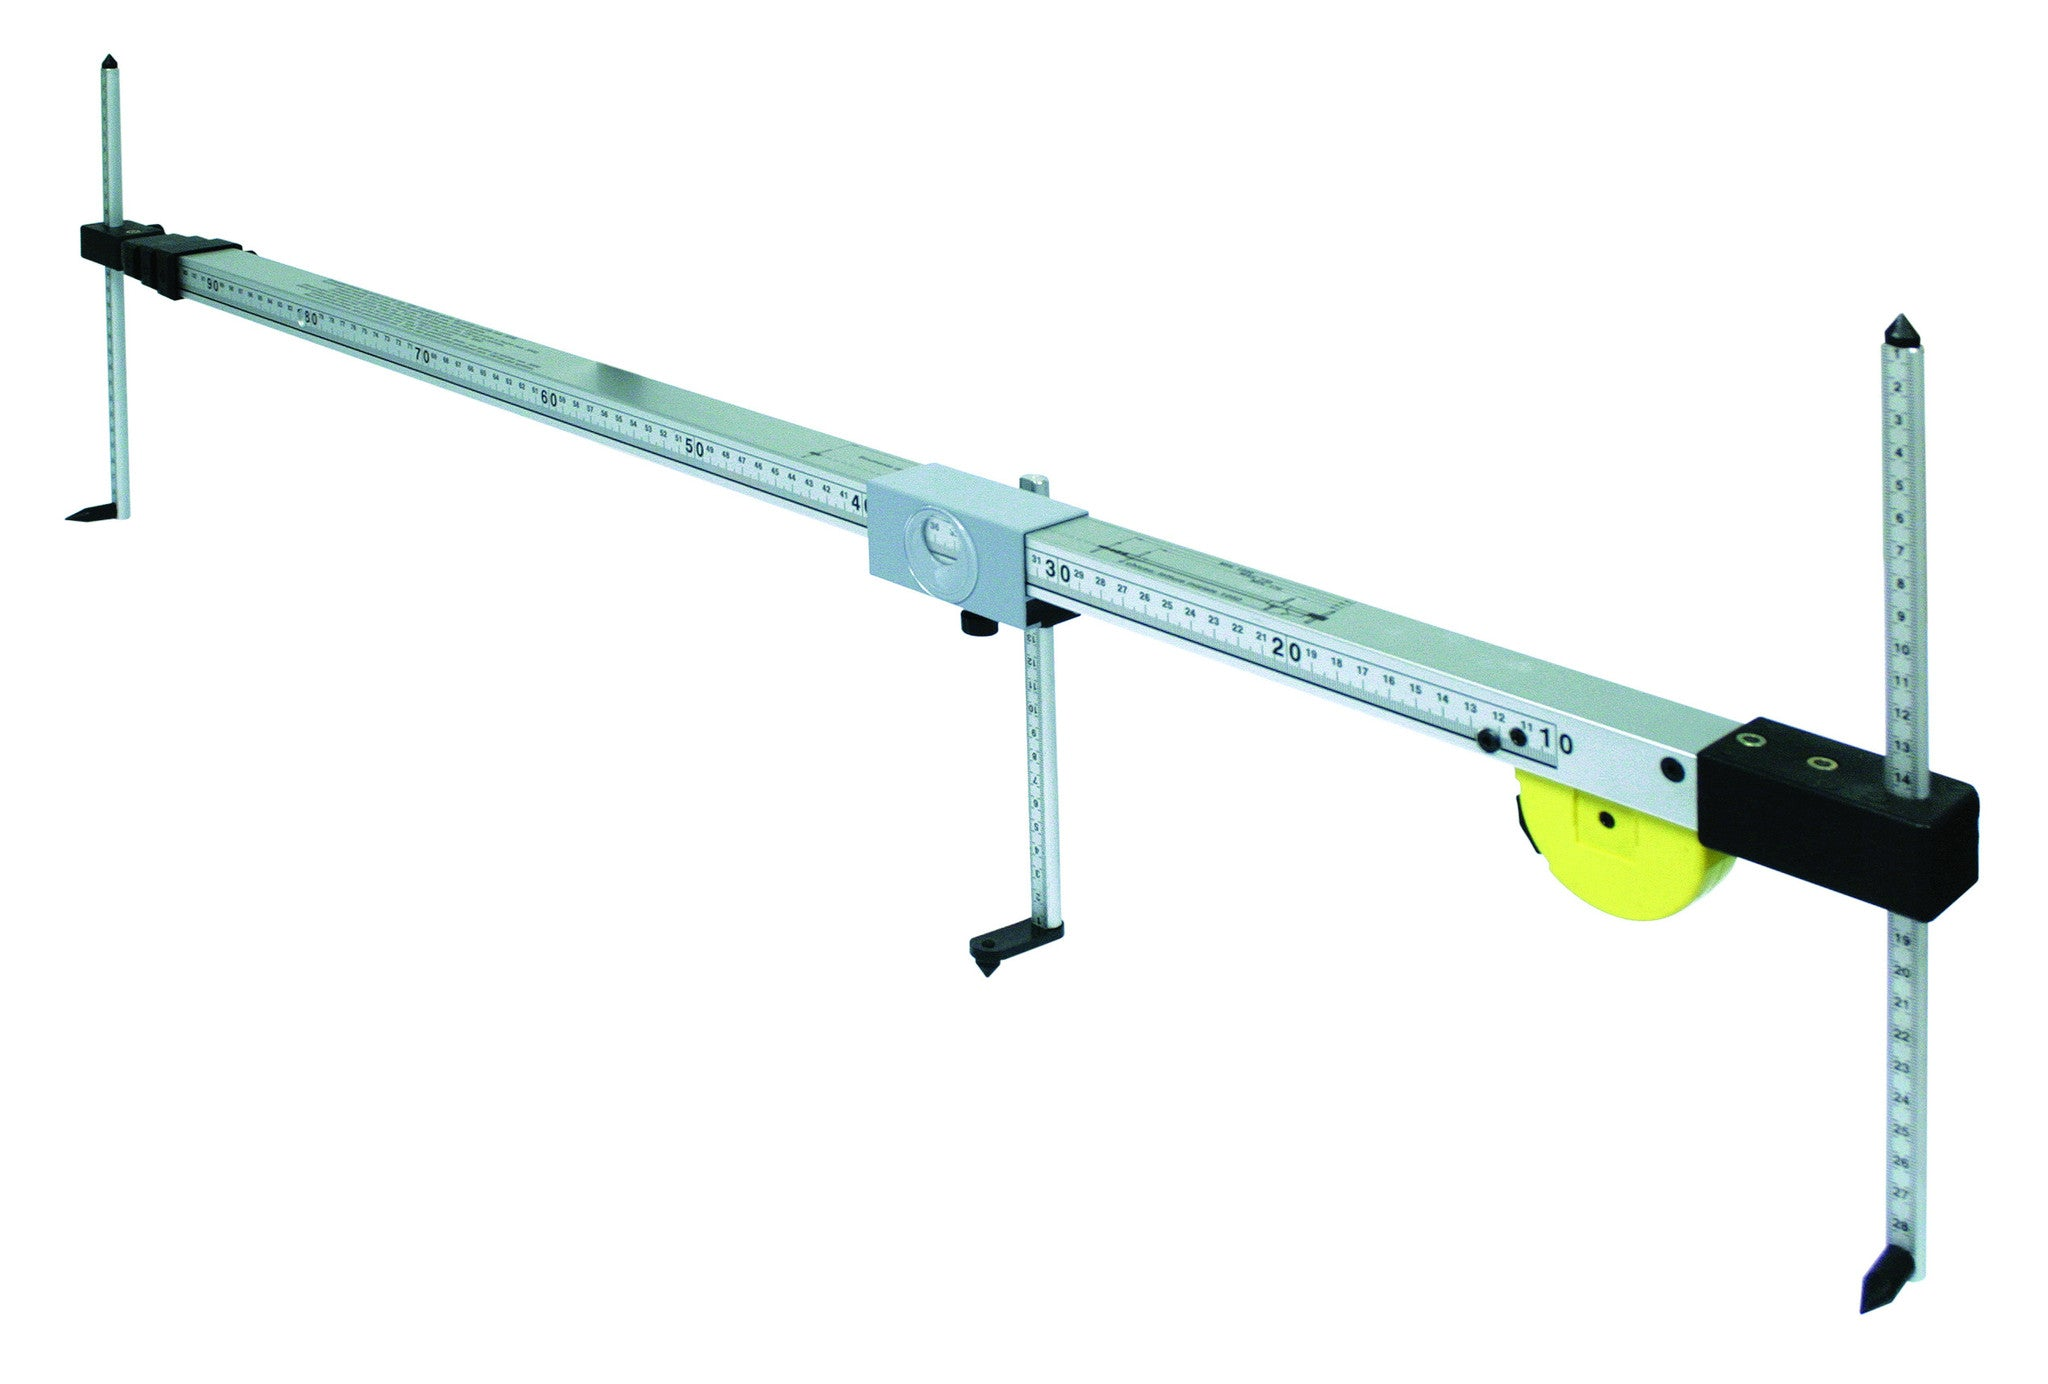 D-400 - Telescopic Tram Gauge - Collapsible Tram Gauge